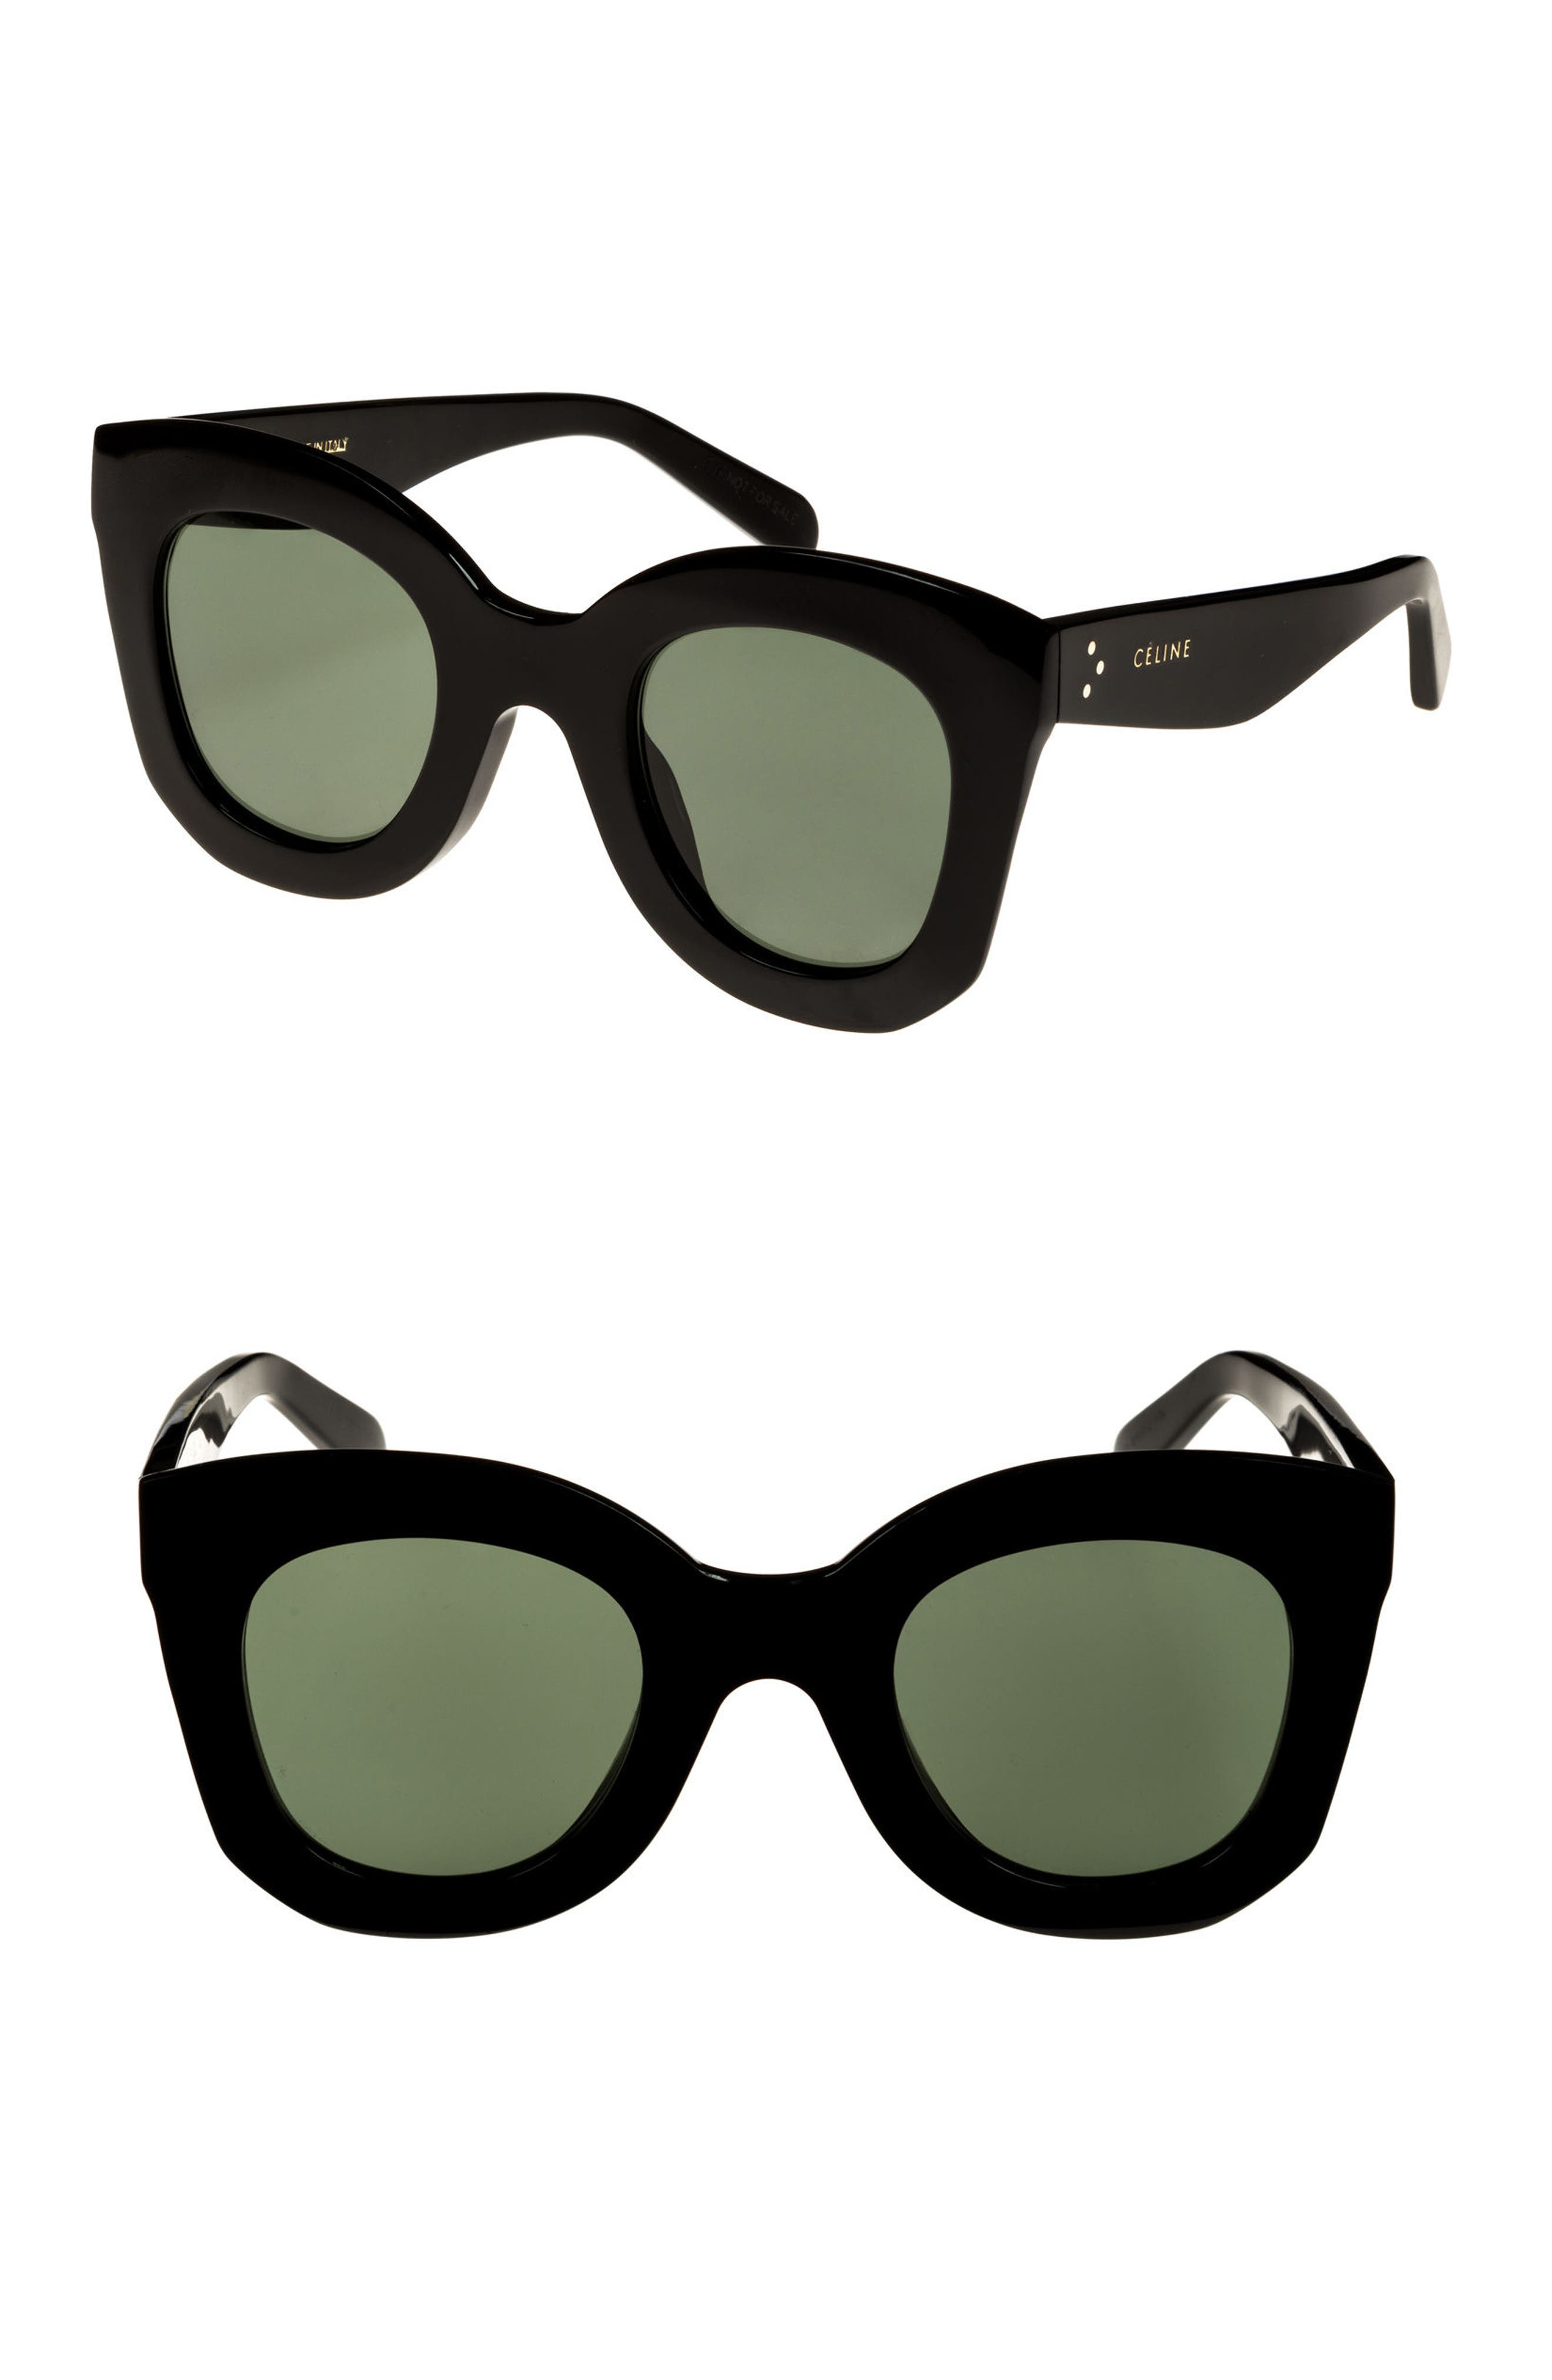 CELINE, Special Fit 49mm Cat Eye Sunglasses, Main thumbnail 1, color, BLACK/ GREEN